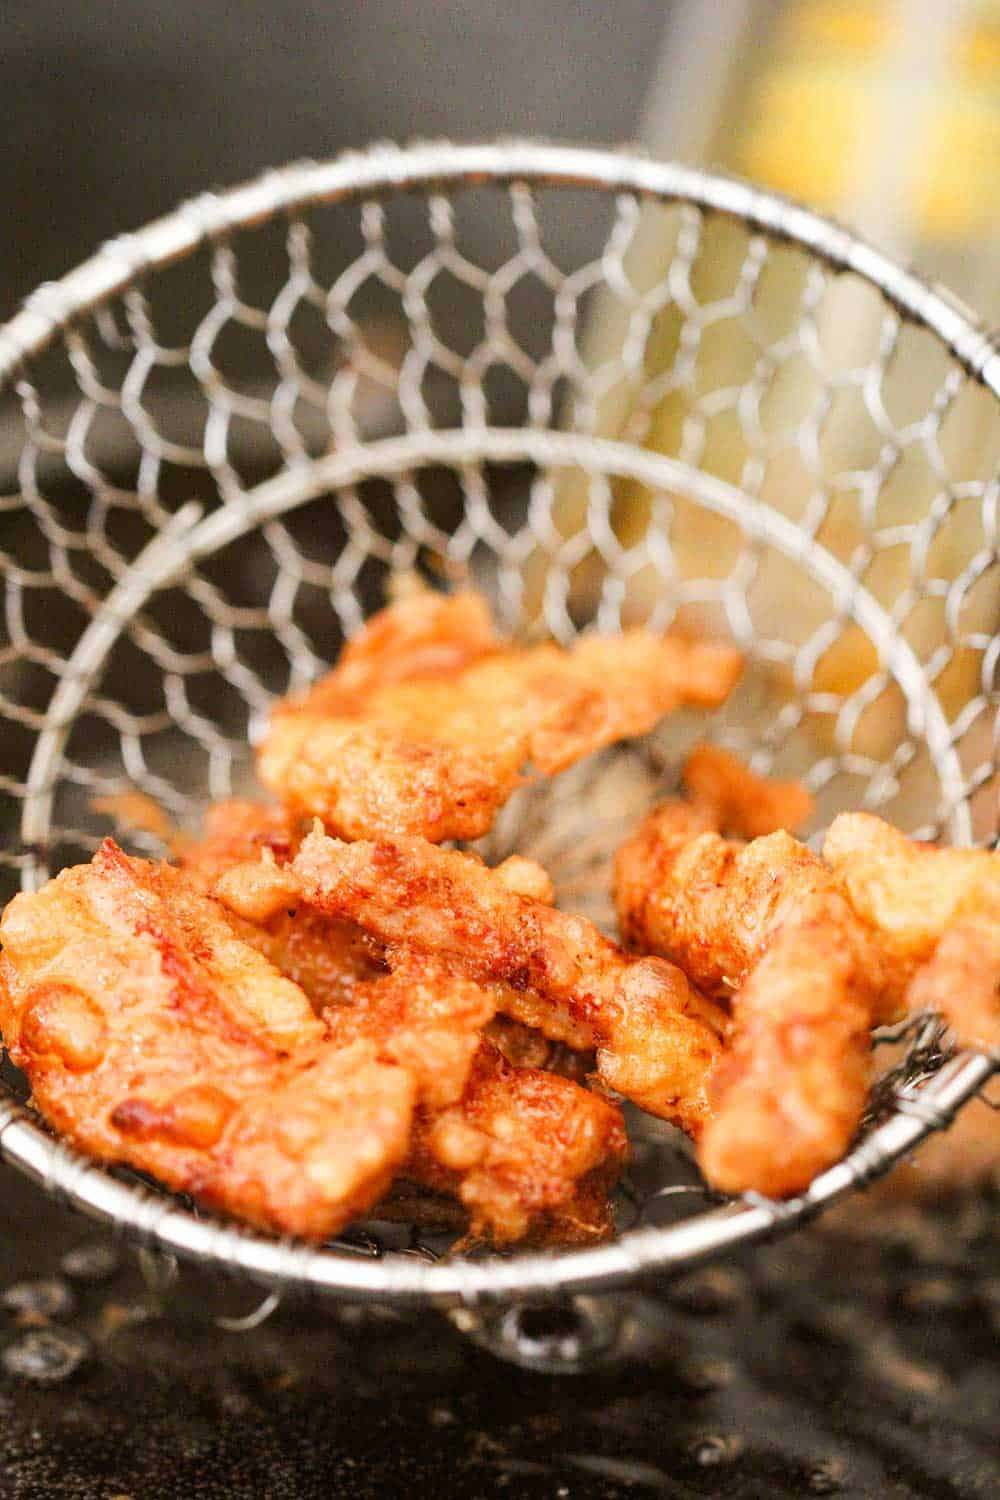 Deep fried pork strips in a metal spatula for Sweet and Sour Pork.